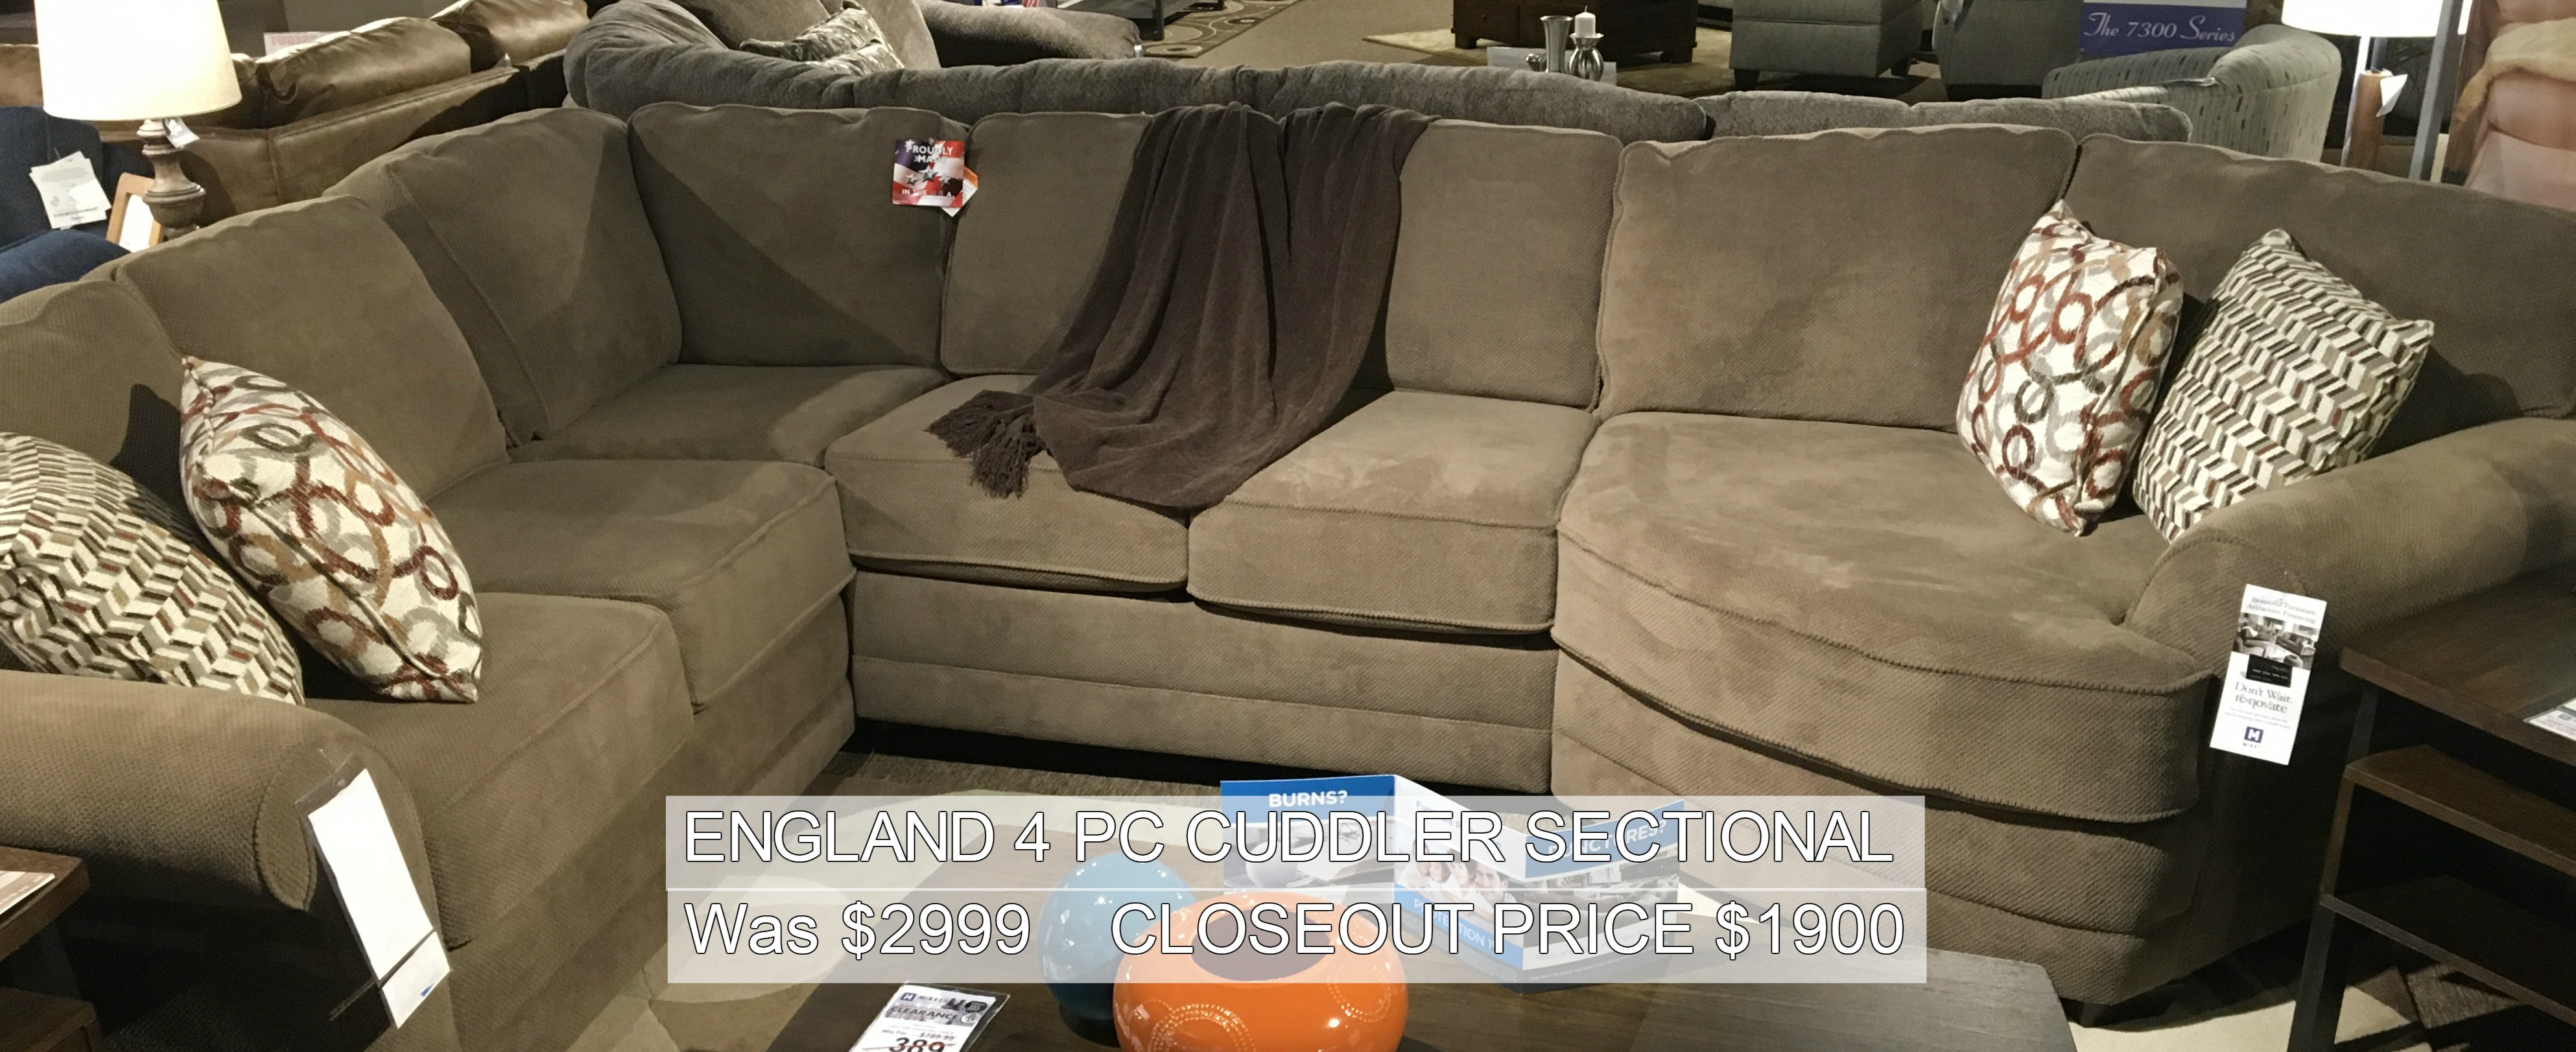 England 4PC Cuddler Sectional Only $1900